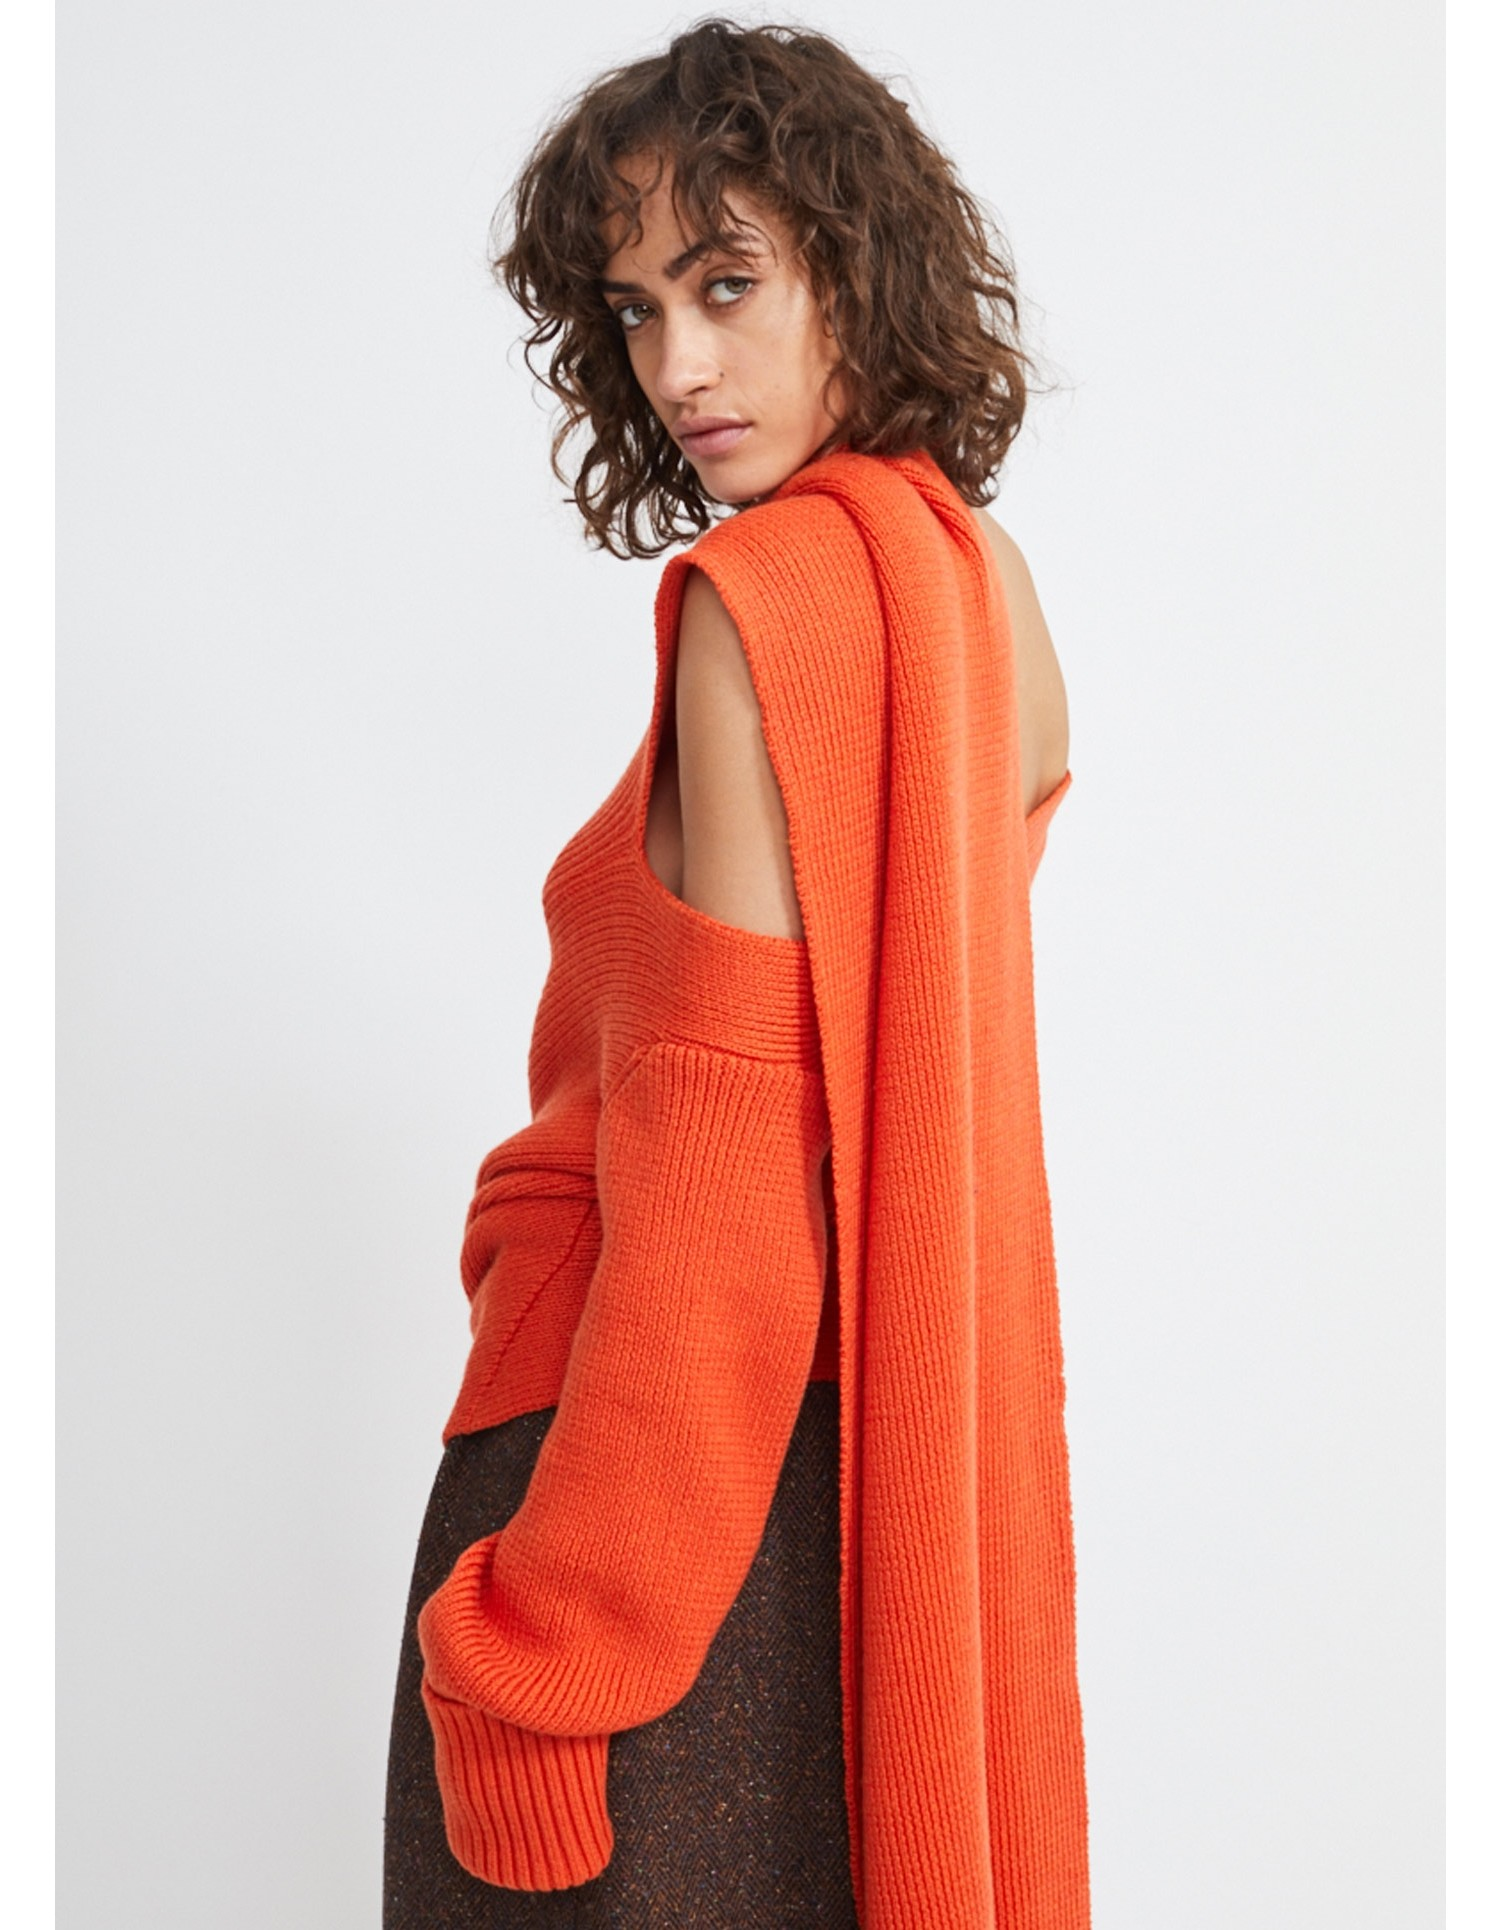 MONSE Scarf Knit in Bright Orange Flat Front